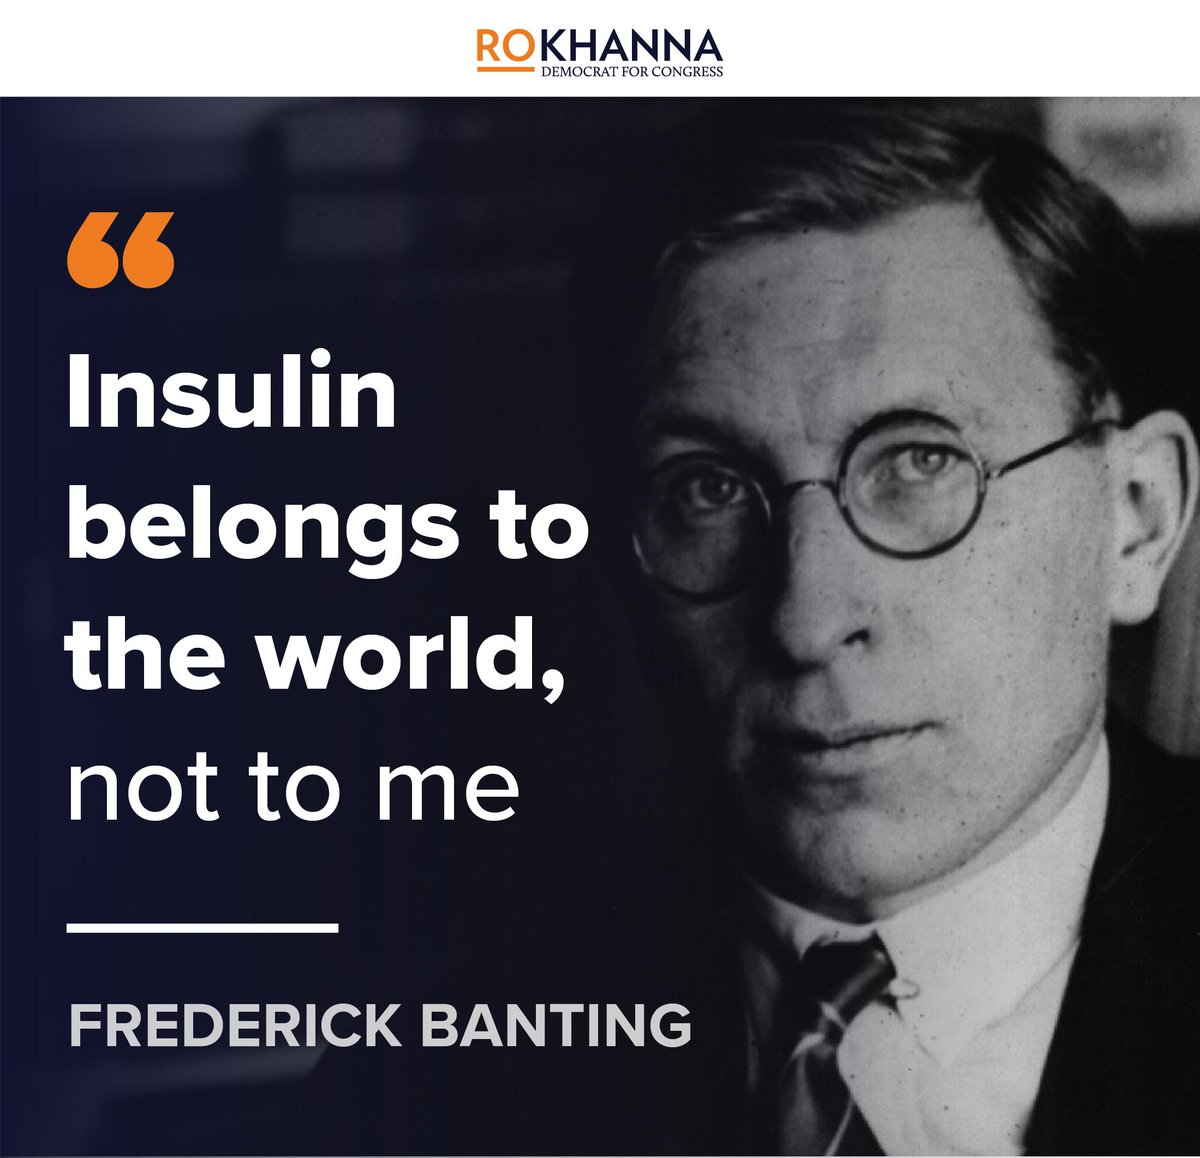 Frederick Banting invented insulin in the early 1920s and when it was mass produced, Eli Lilly offered $1 million for the patent.   Instead Banting took only $1.  Today, three companies abuse their patents for profit and prices have more than doubled since 2012. #Insulin4All<br>http://pic.twitter.com/ed7VQgVwDD